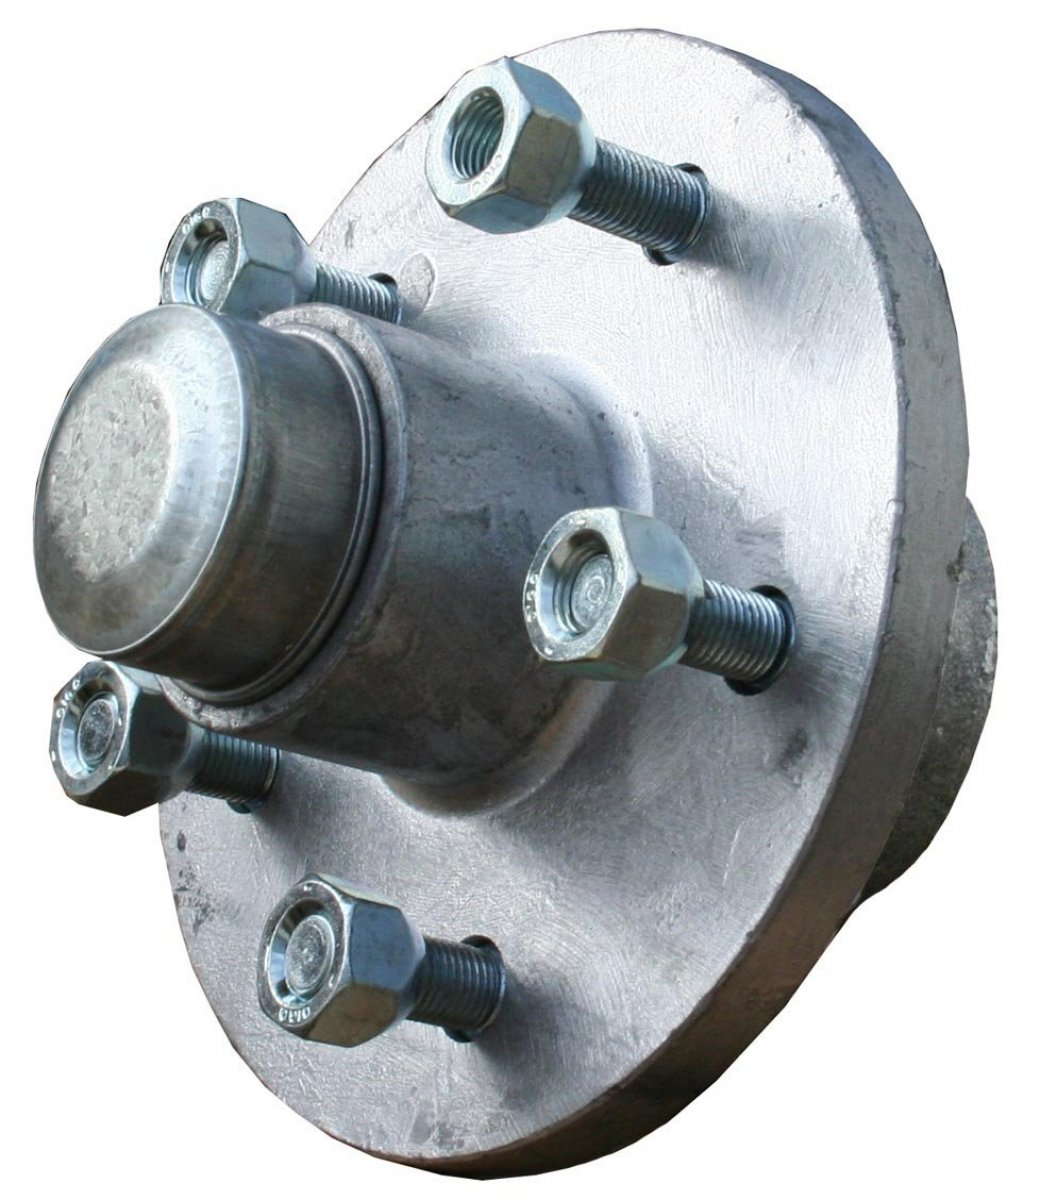 SPARE BEARING AND HUB - HUB IN A TUB - $ 70.00